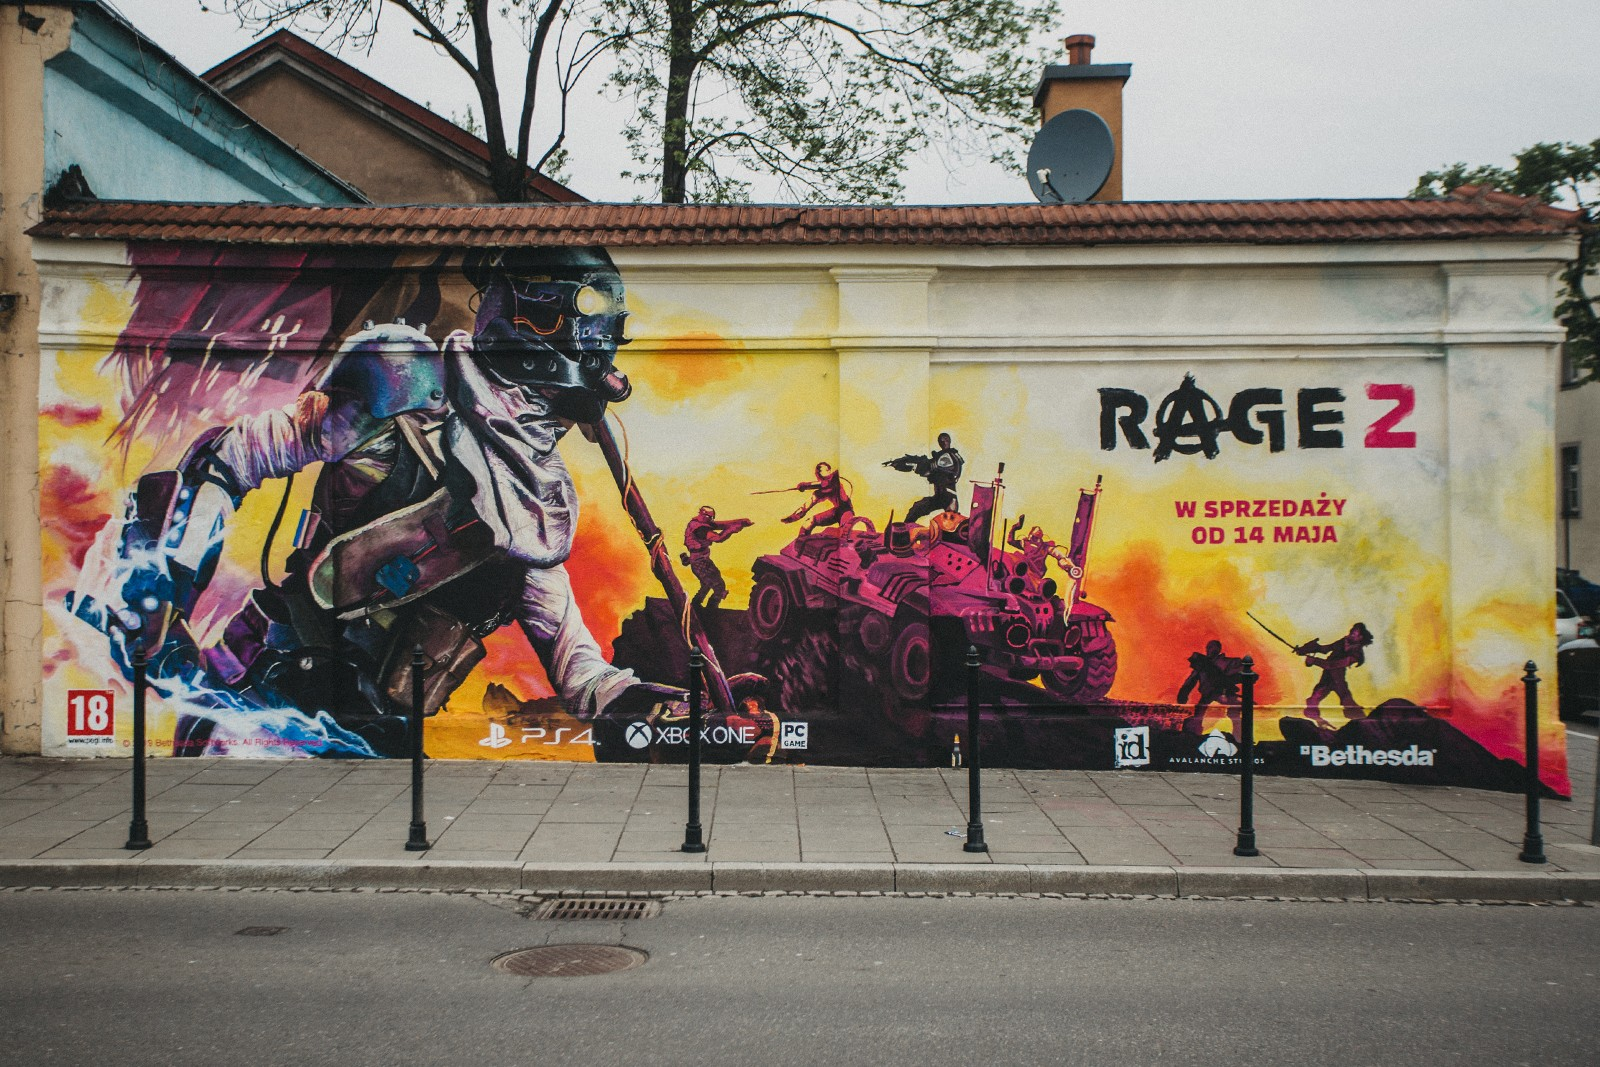 Mural of game Rage 2nd in Krakow at the 21 Gazowa street | Rage 2 | Portfolio